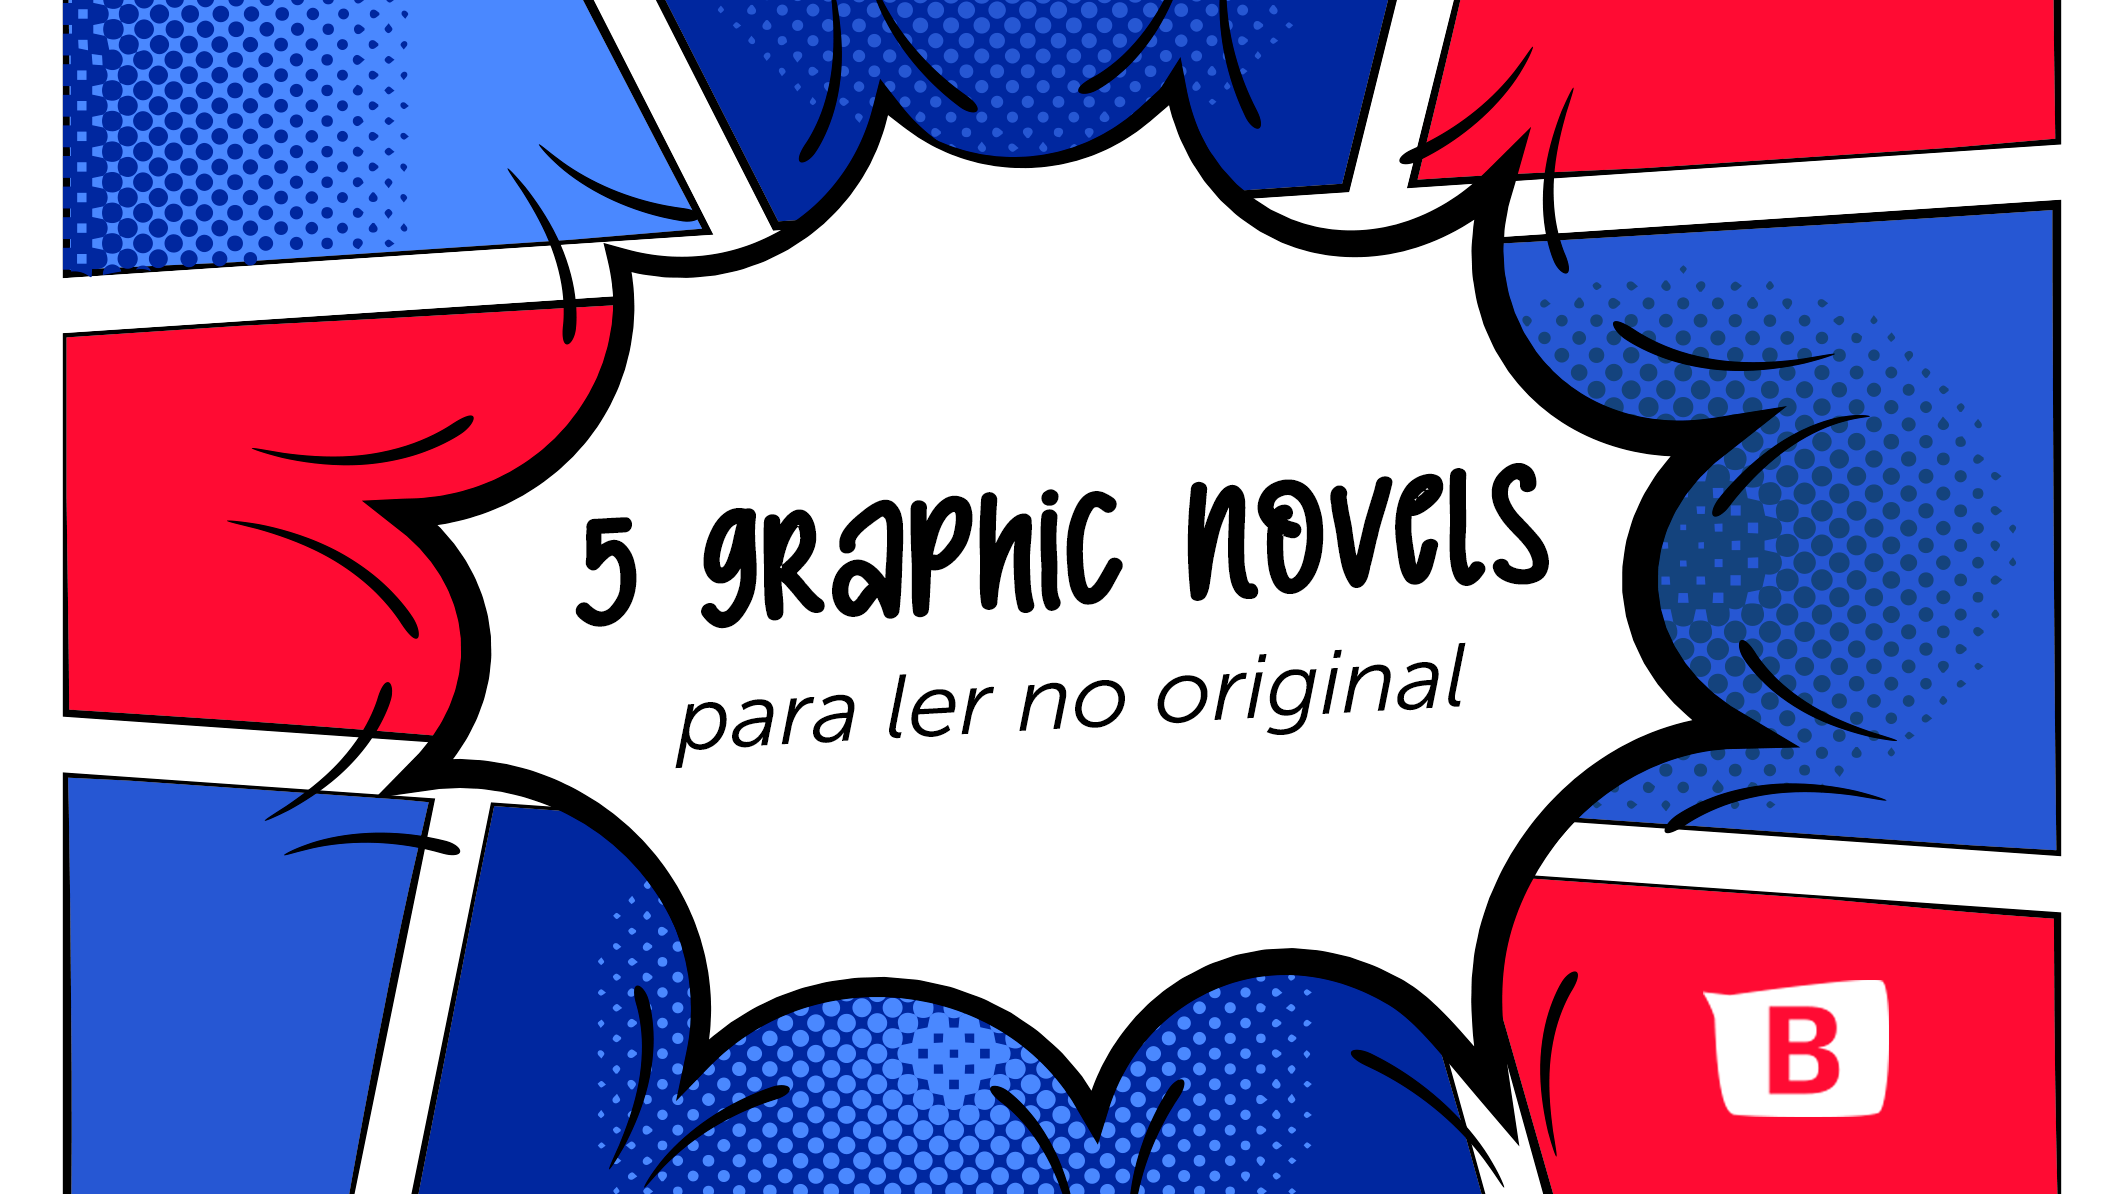 5 graphic novels para ler no original 3